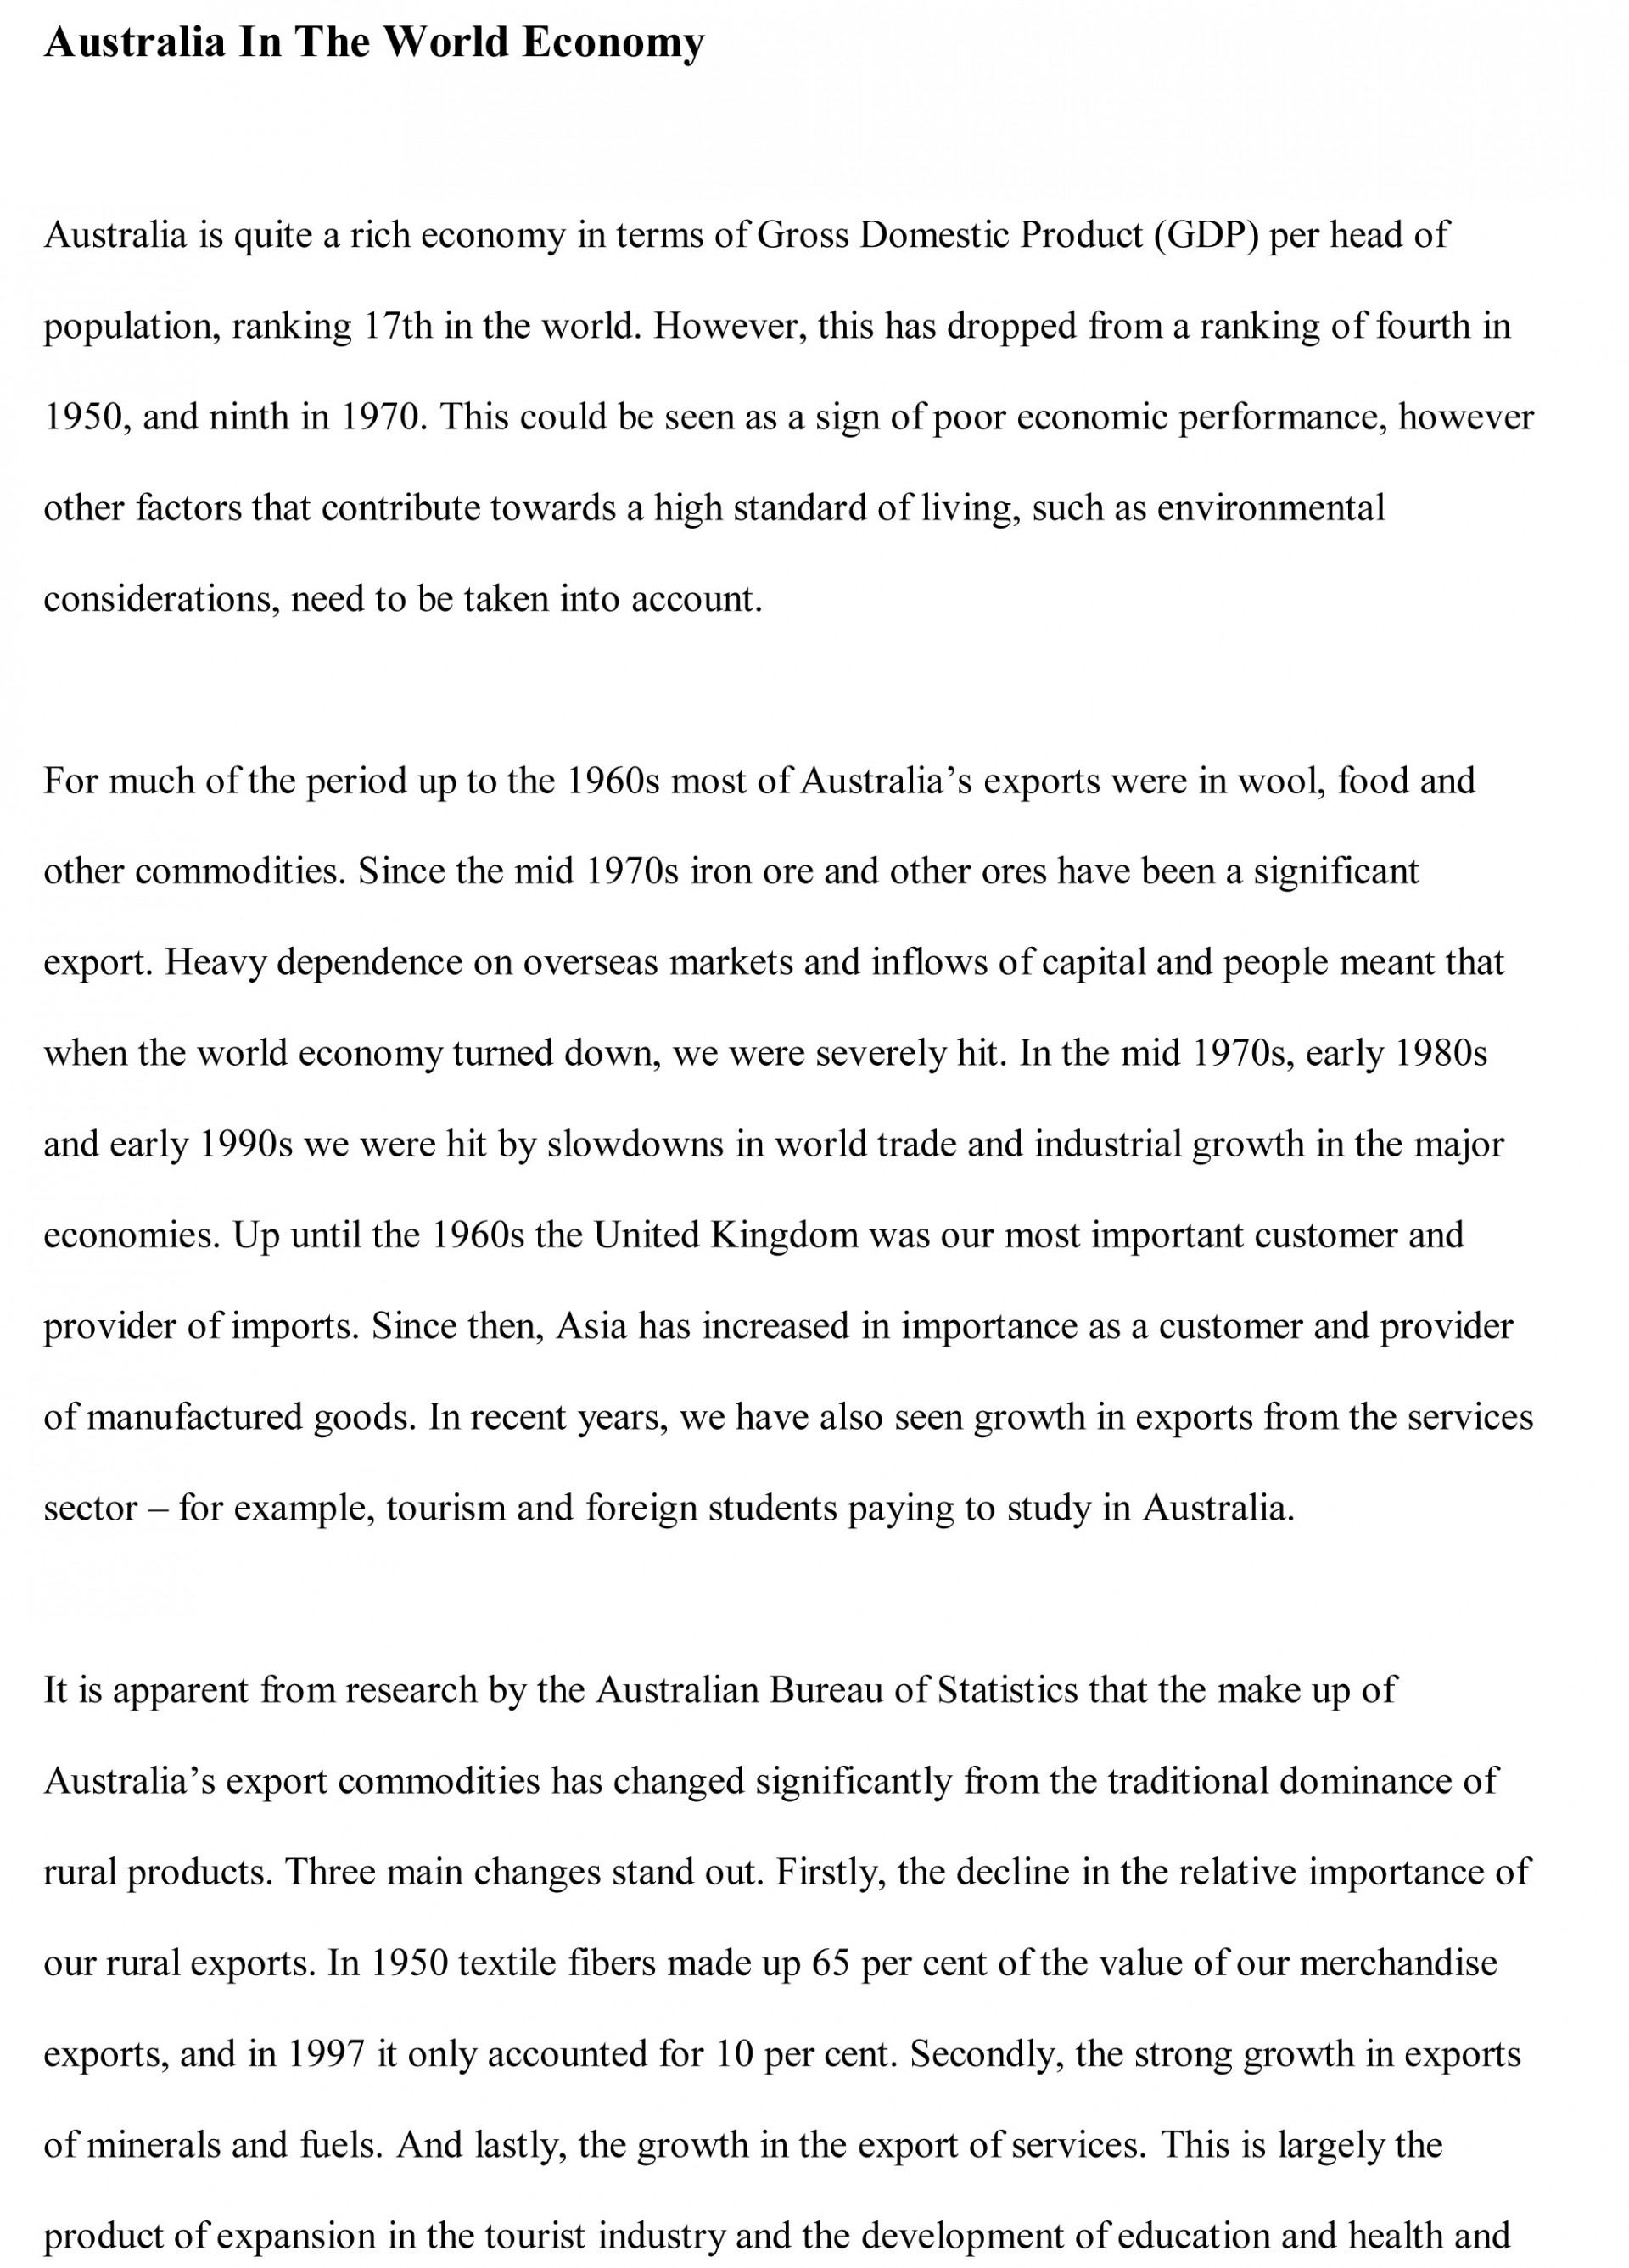 014 Globalization Conclusion Essay Example Economics Free Wonderful 1920